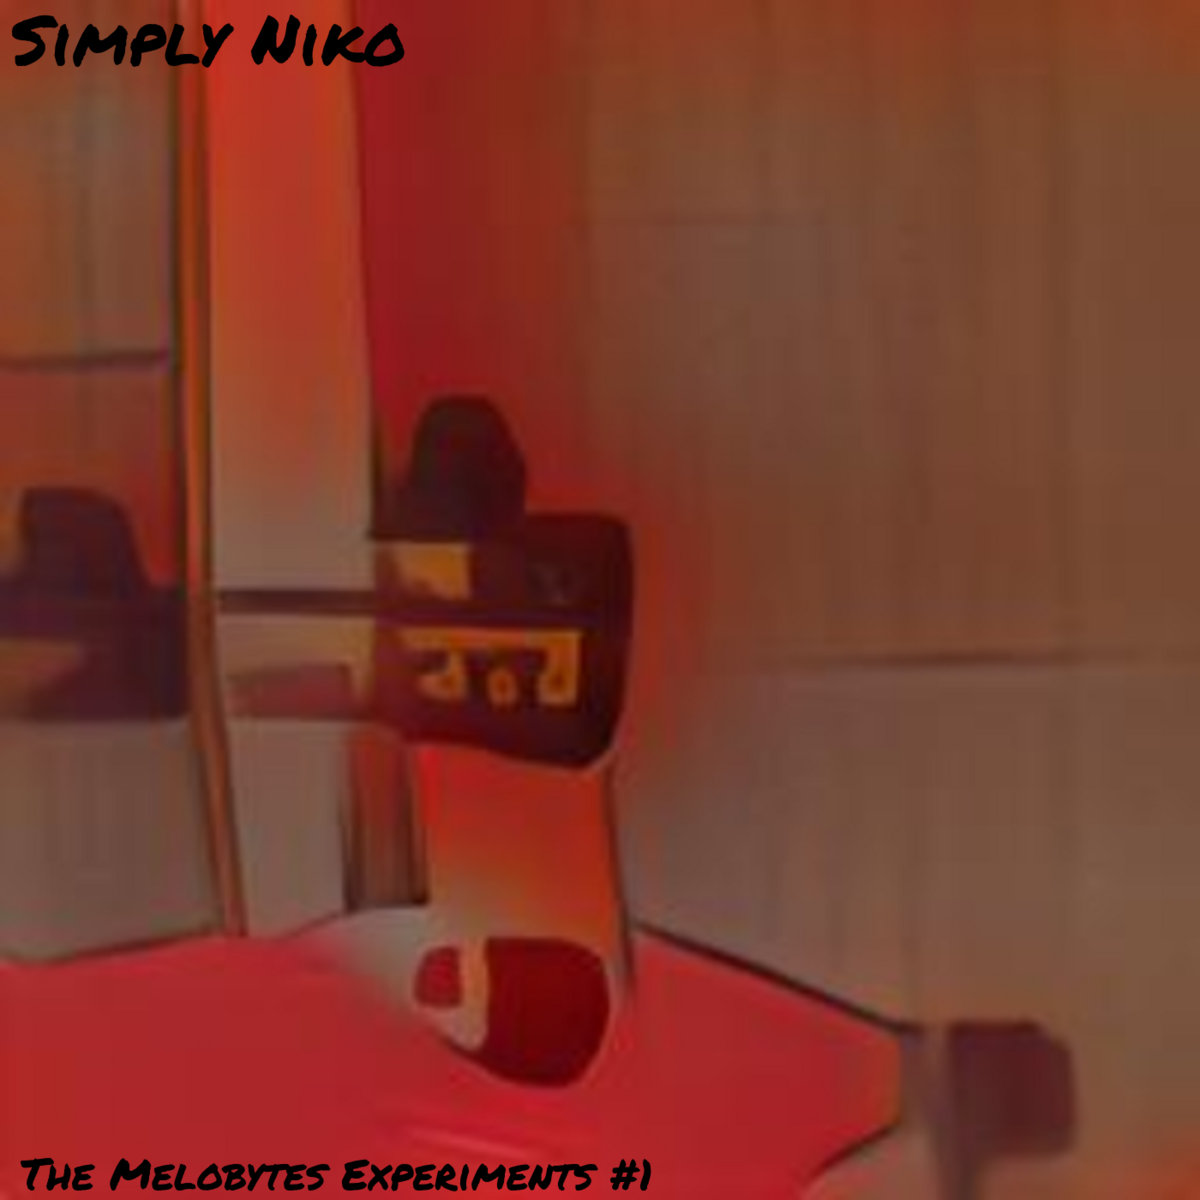 The Melobytes Experiments 1 Simply Niko Here's what you need (and remember to comment below): simply niko bandcamp